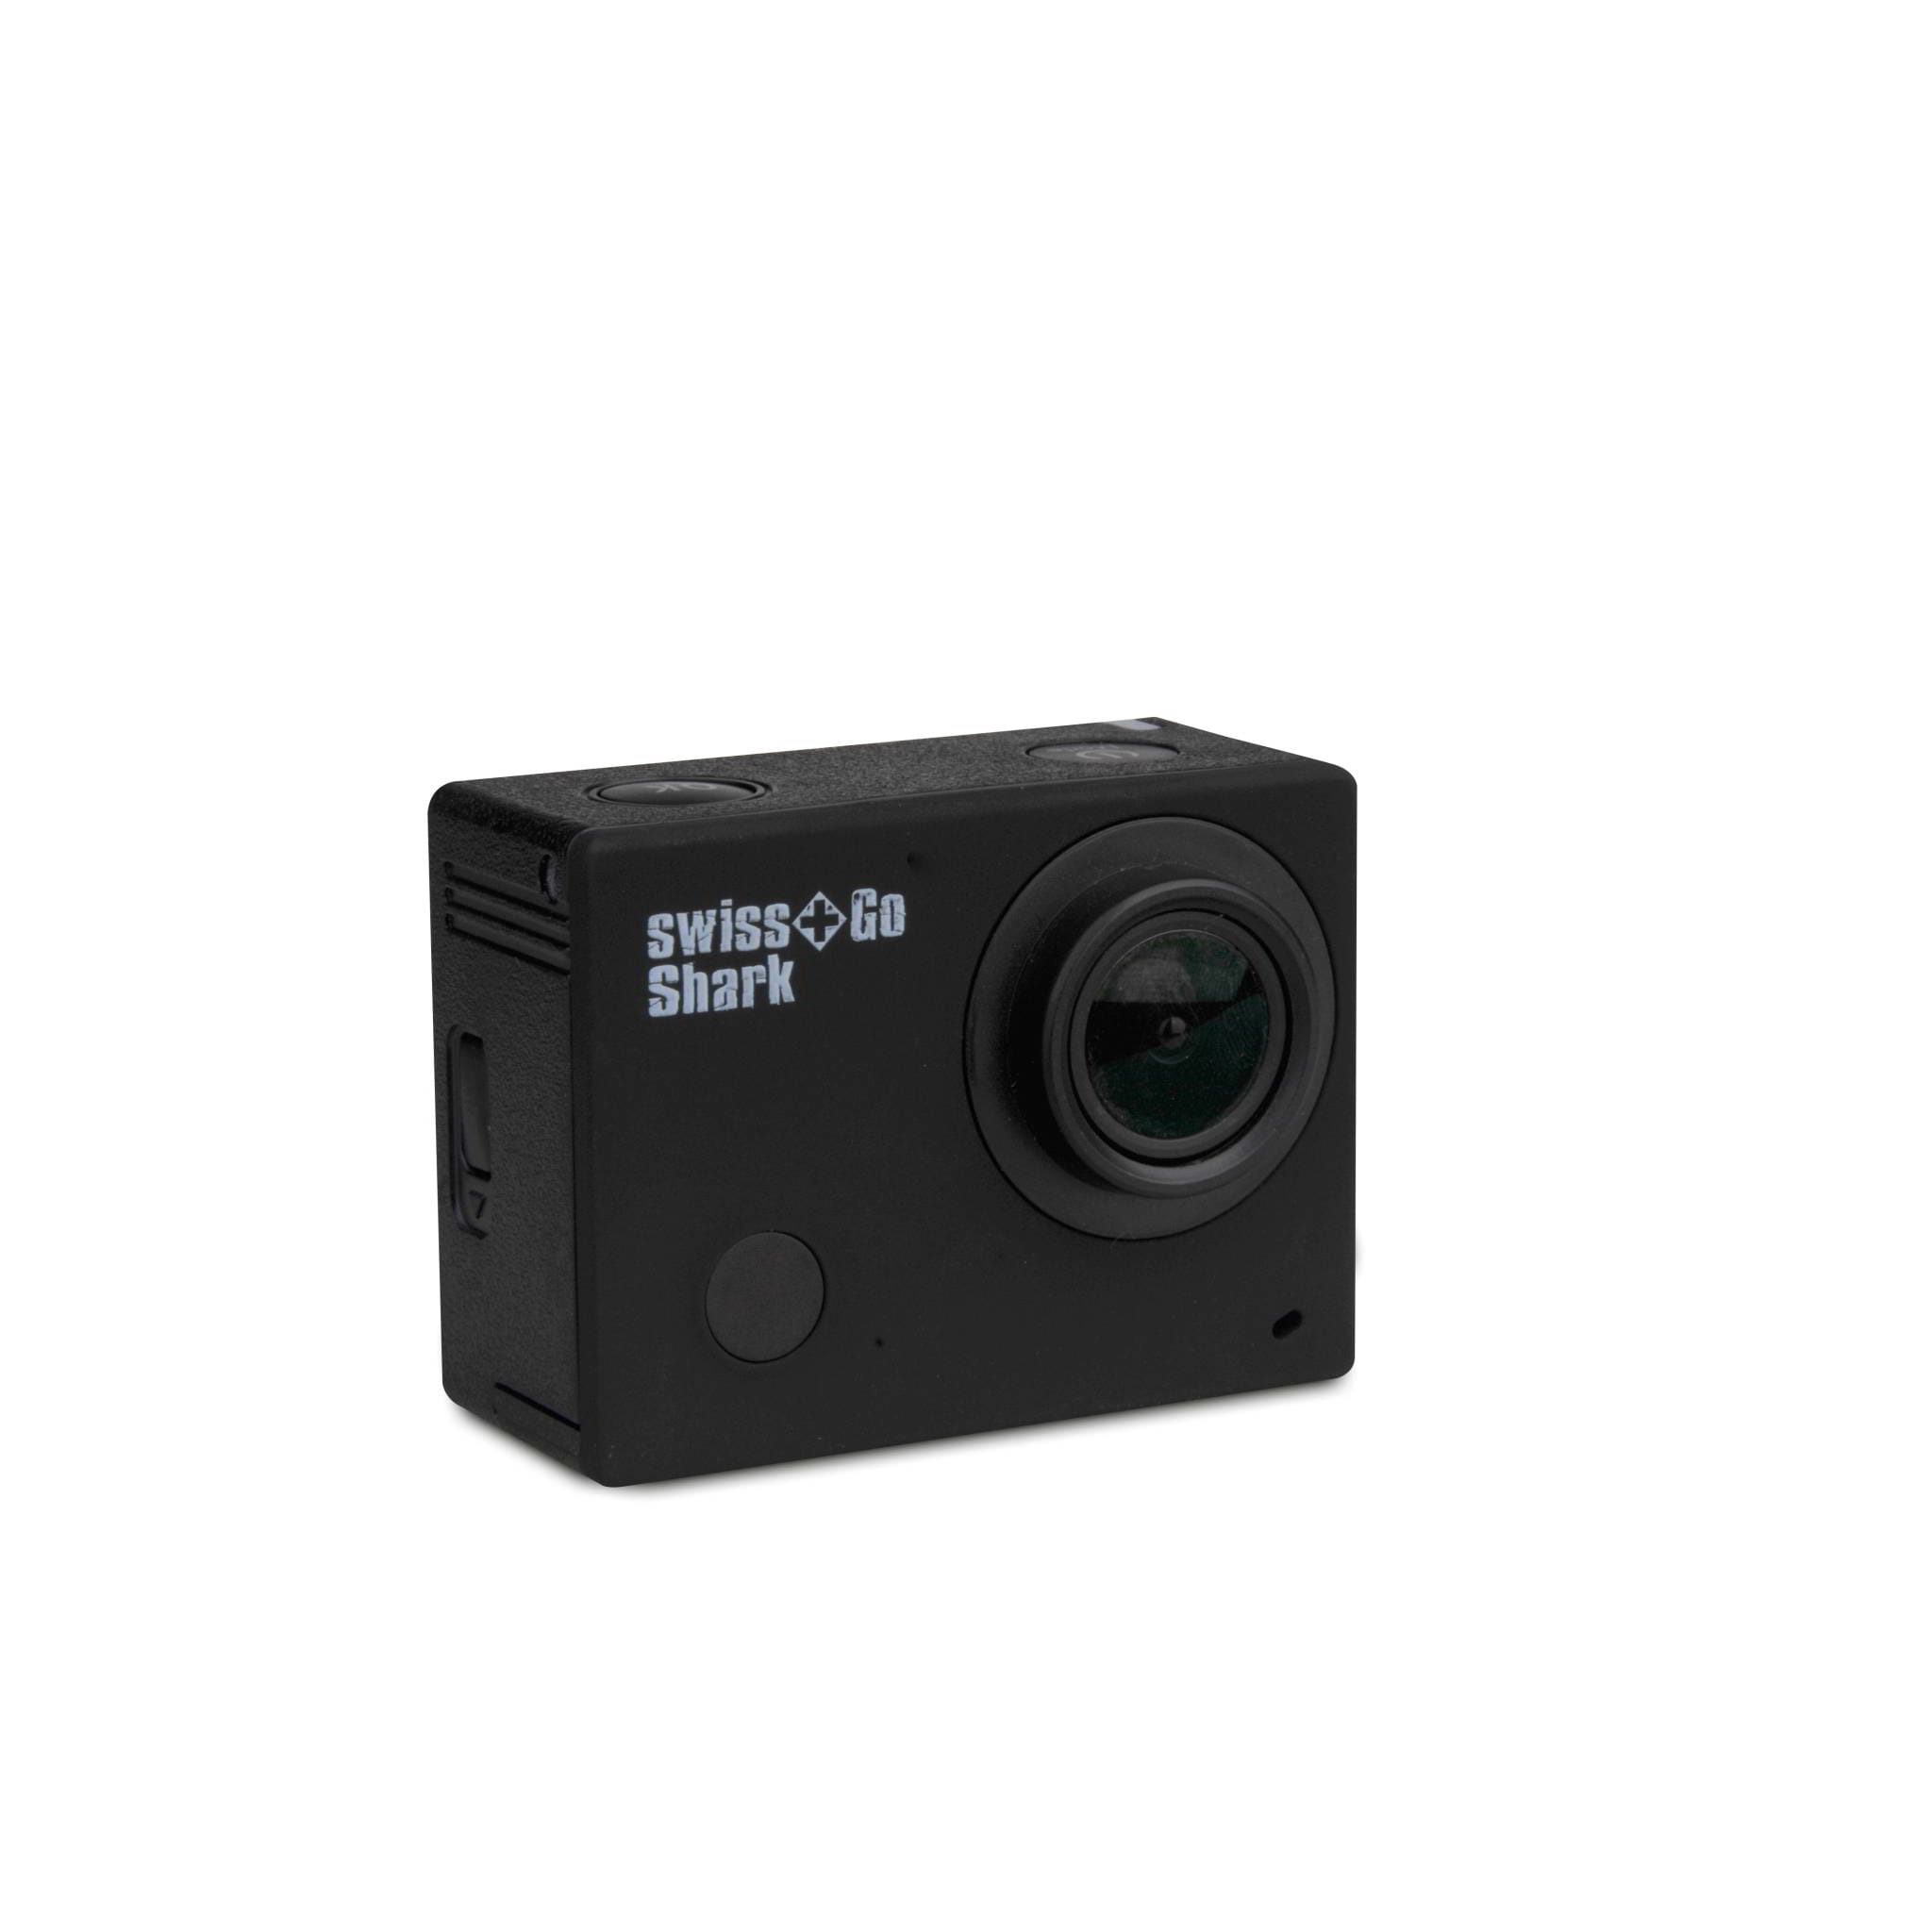 SWISS GO SHARK 5 MP WIFI FULLHD ACTION CAM